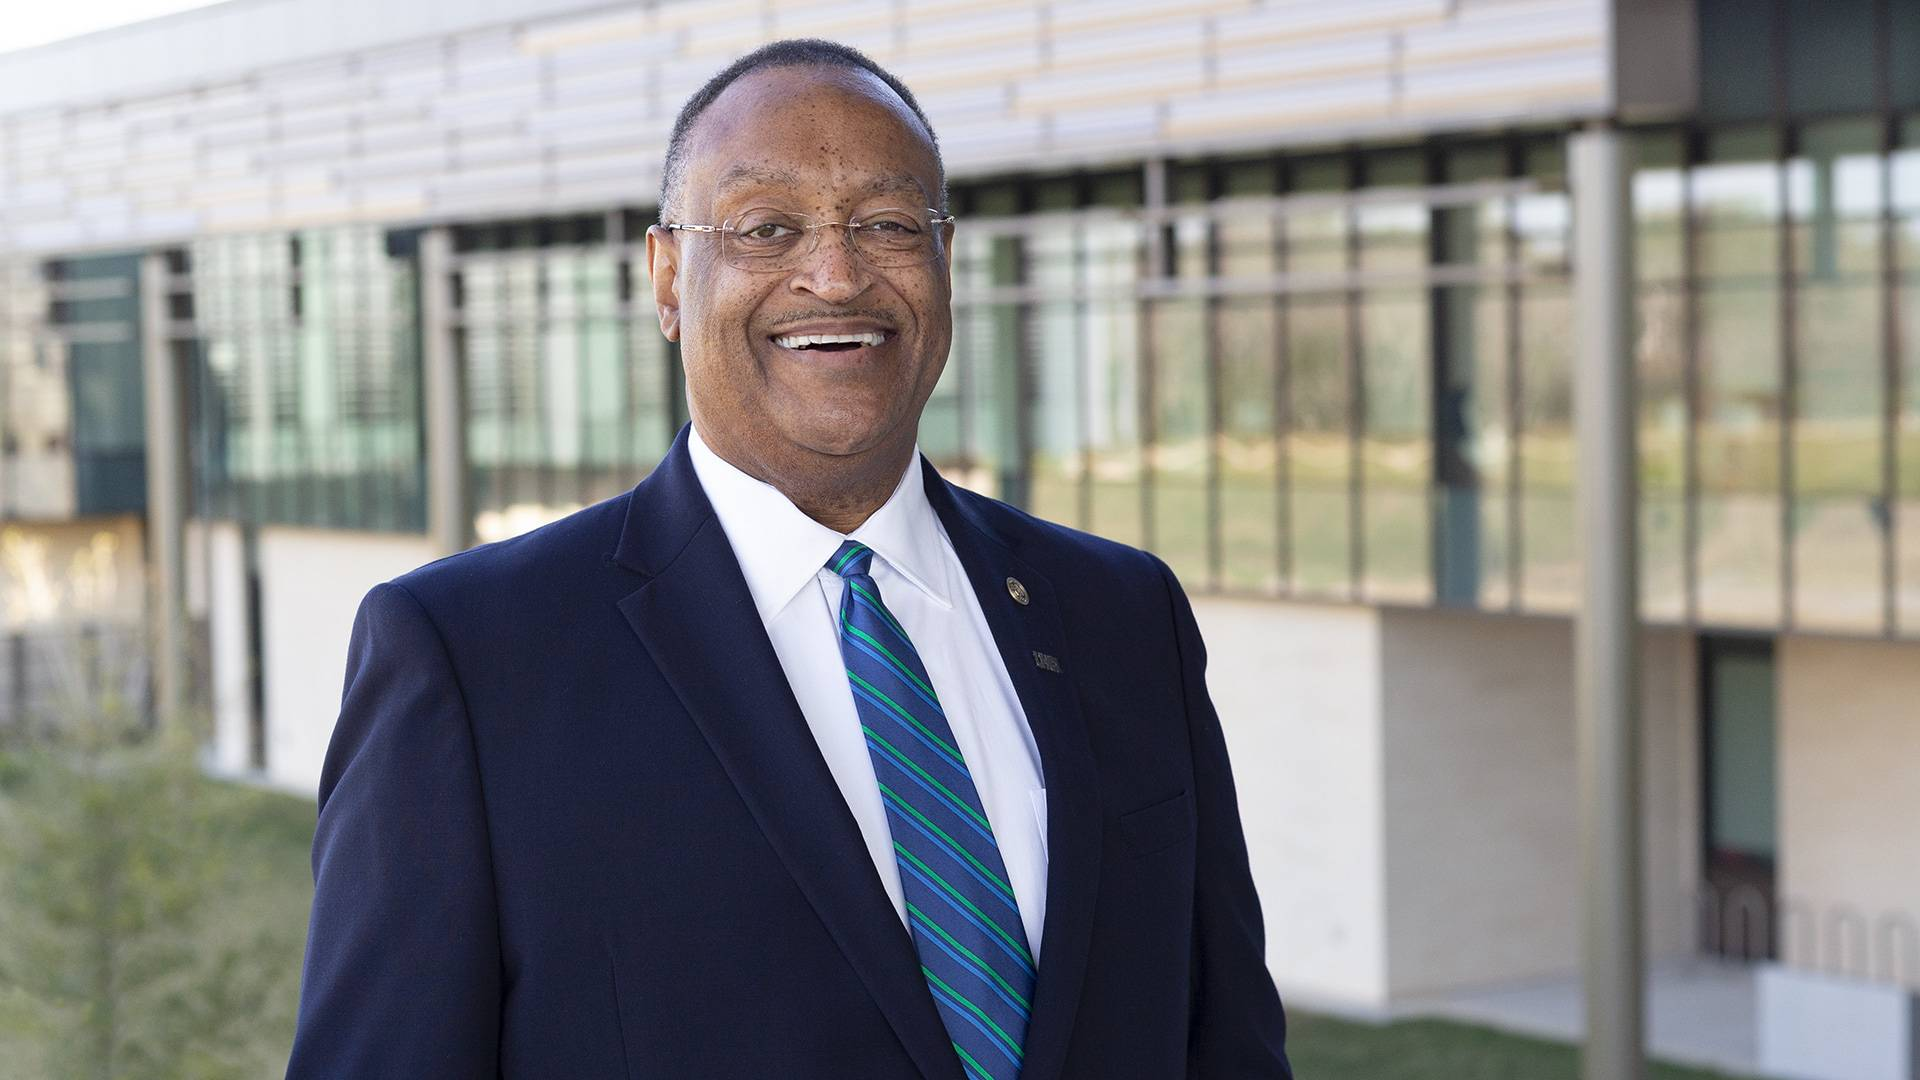 Black History Month: UHCL alum shares path to success